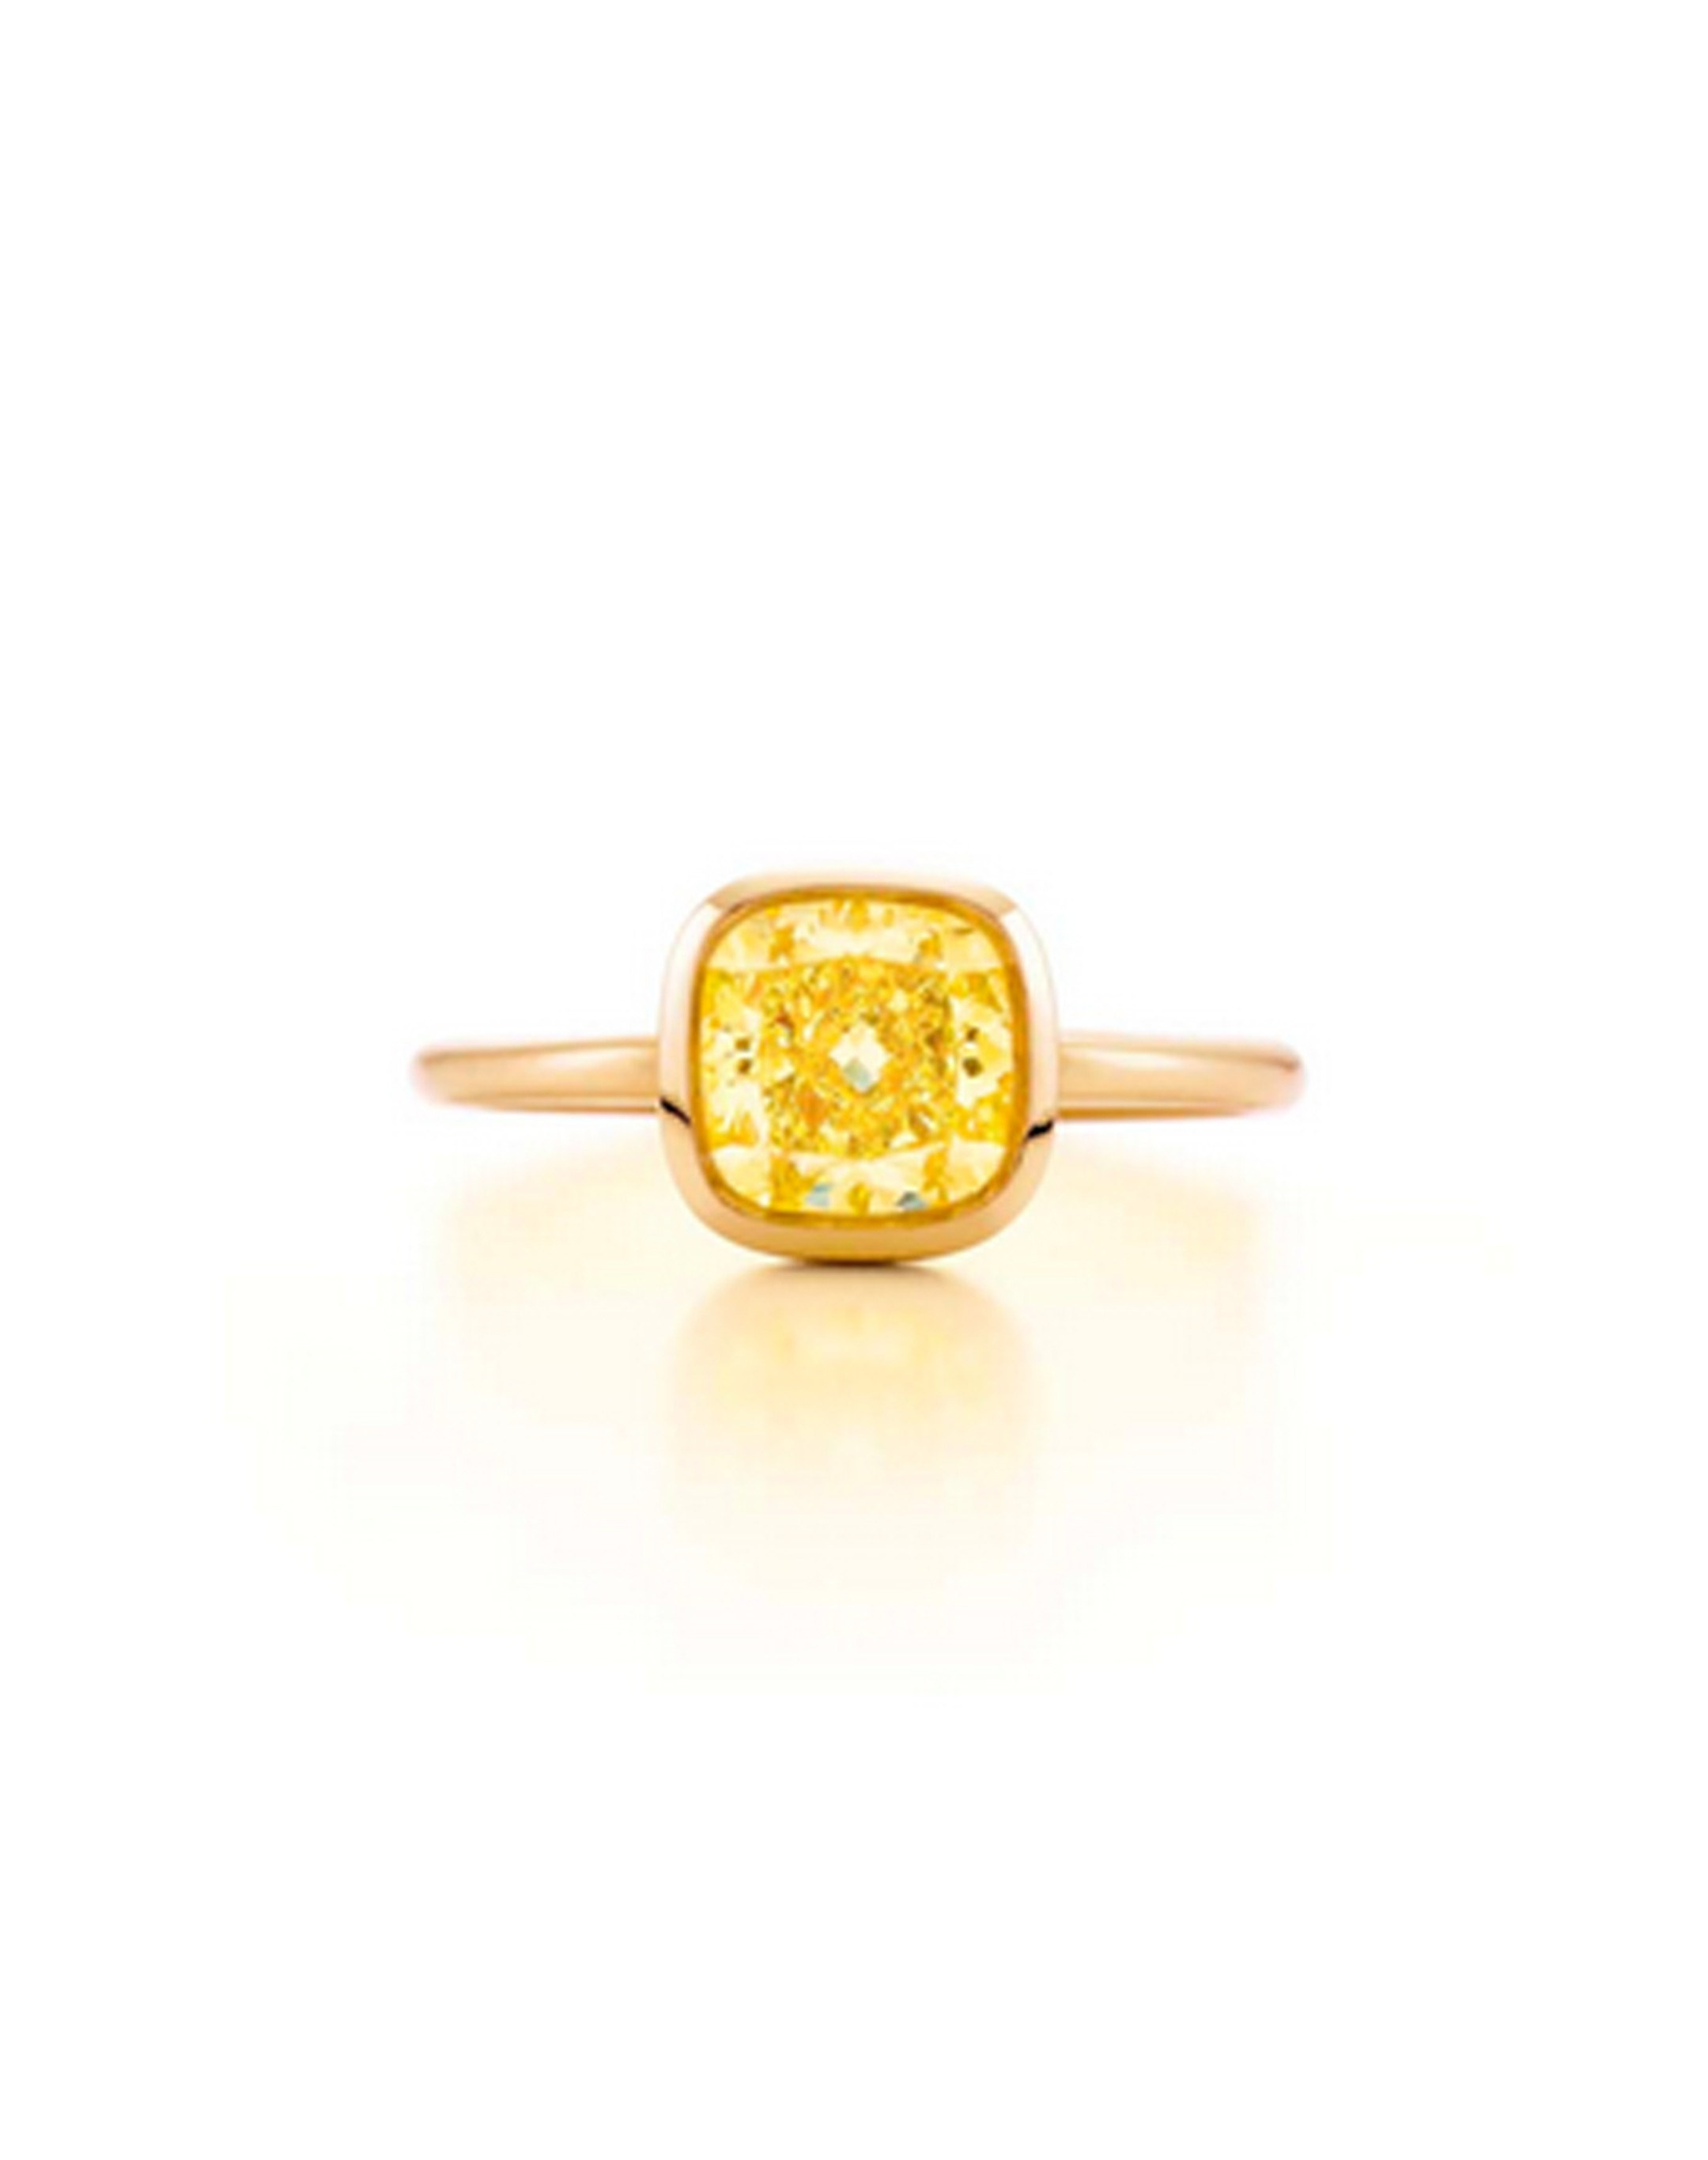 Tiffany cushion-cut yellow diamond engagement ring in pink gold (£POA).